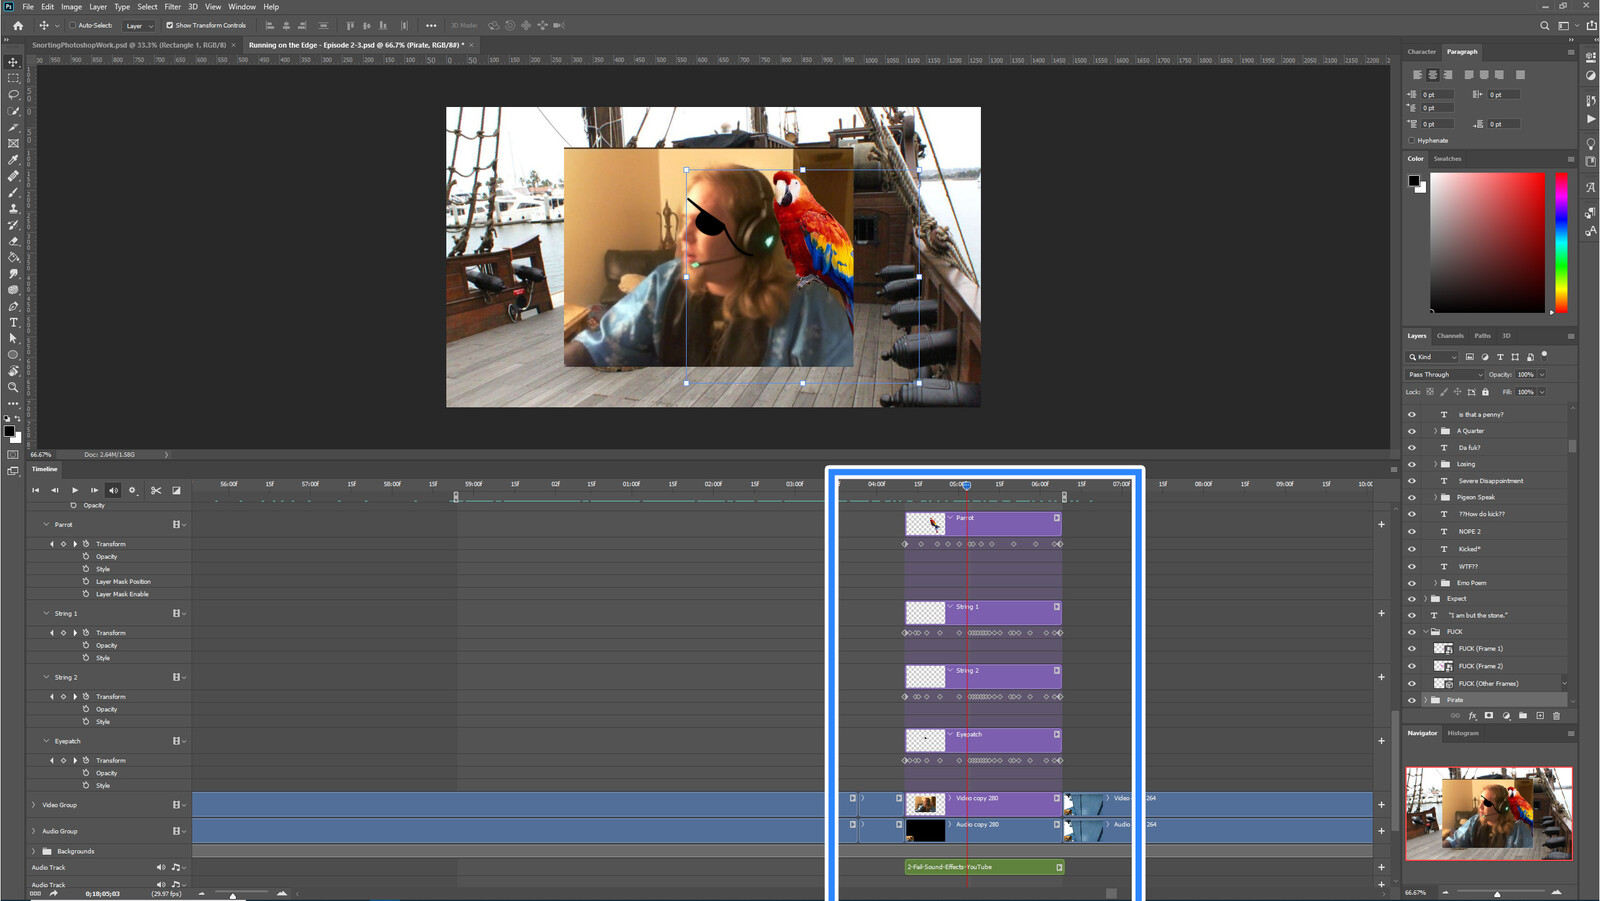 """The """"Pirate Yeti"""" visual effect within Photoshop video editor"""